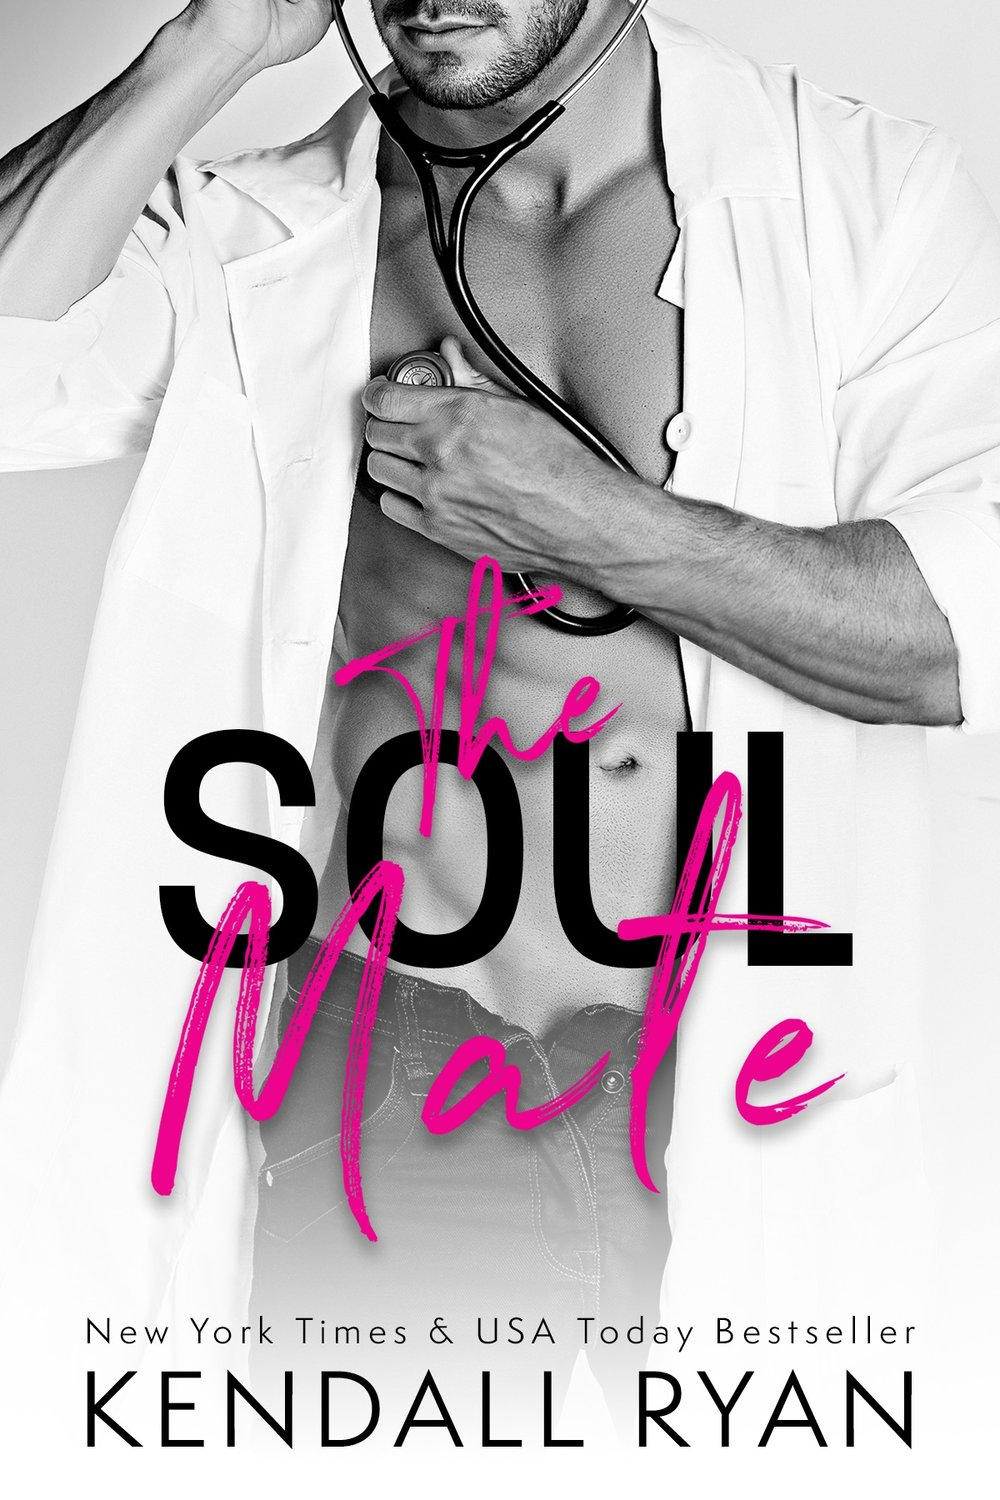 THE SOUL MATE    By Kendall Ryan    Release Day – August 14, 2017   From  New York Times Bestseller  Kendall Ryan comes a sexy new stand-alone novel in her Roommates series.  The smoking-hot one-night stand I was never supposed to see again?  Yeah, well, I might be pregnant, and he's my OB-GYN.   Get ready to fall head over heels madly in love with the hottest OBGYN doctor you have ever met! This full-length standalone contains the most hilariously awkward lady-doctor visit, lots of playful banter and some good ol' fashioned baby-makin'!   Goodreads:  goo.gl/vtN29n   Amazon:  http://amzn.to/2prMKrM   iBooks:  goo.gl/gdBF27   Nook:  https://goo.gl/WO2aco  Kobo:  https://goo.gl/mj7JCX